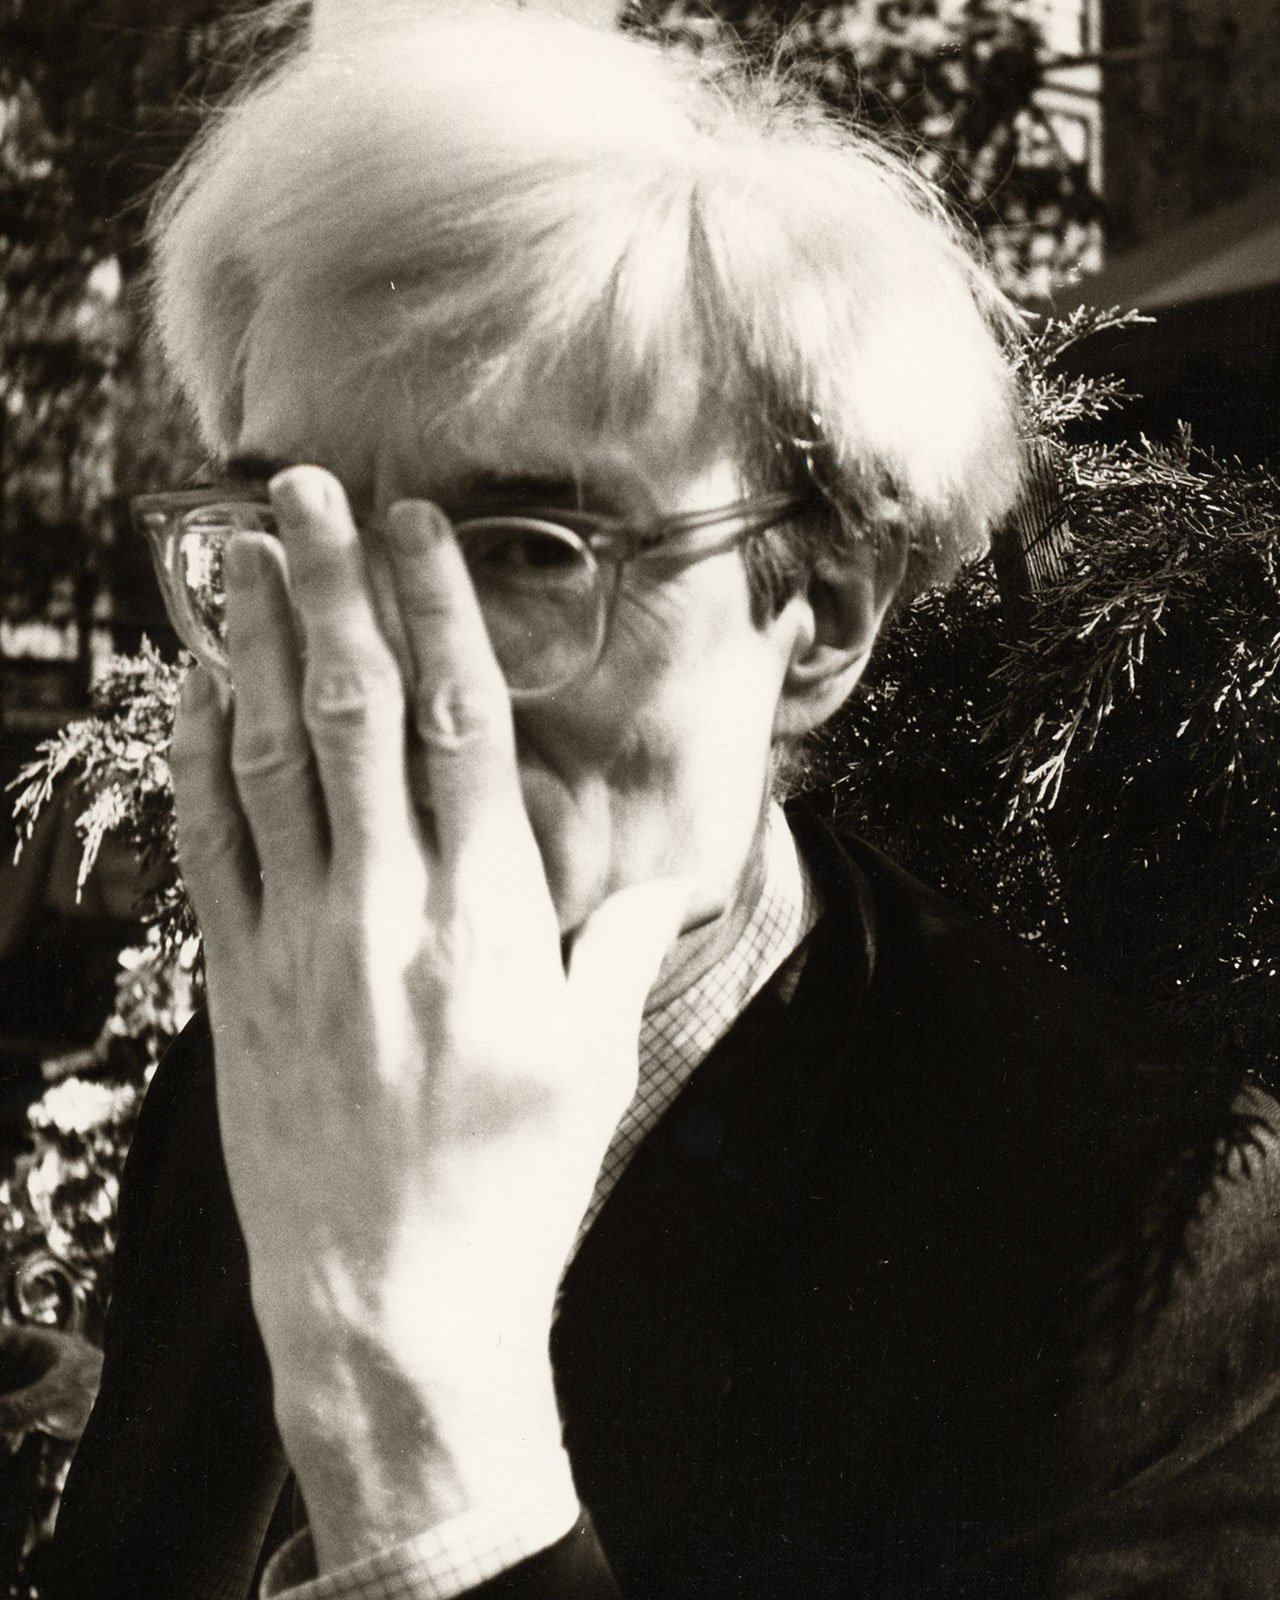 Warhol with glasses